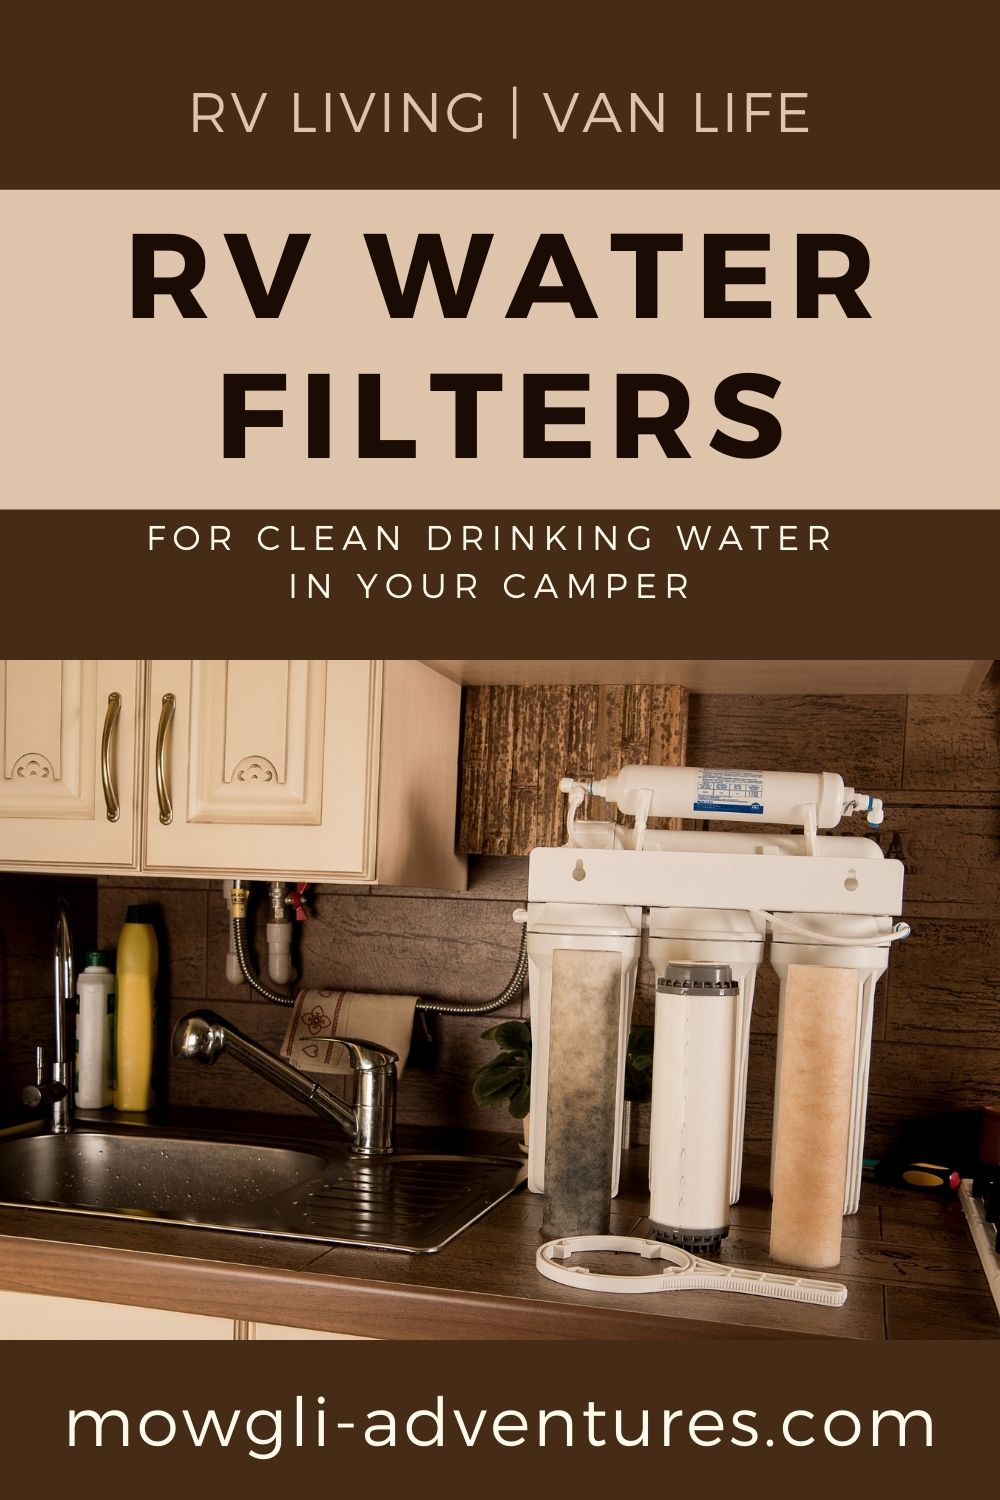 RV Water filters on Pinterest